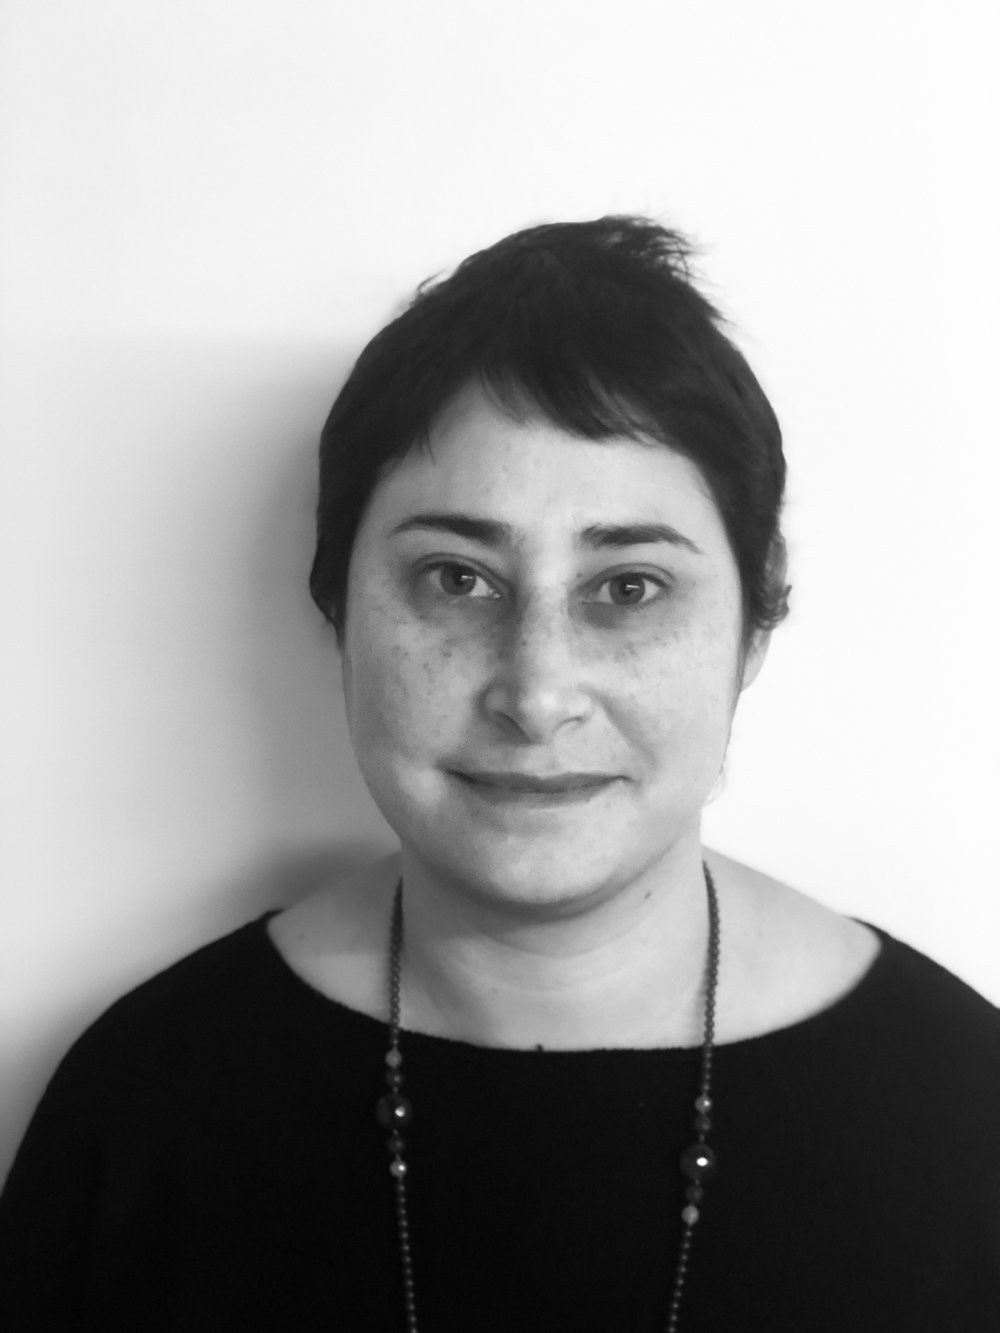 Nina Dubowitz    Architect   Nina has extensive experience in managing projects from start to finish and in coordinating consultant teams. She has worked on numerous complex interior and refurbishment projects. Her excellent problem-solving skills, ensures that all projects are completed accurately and to the highest possible standard.